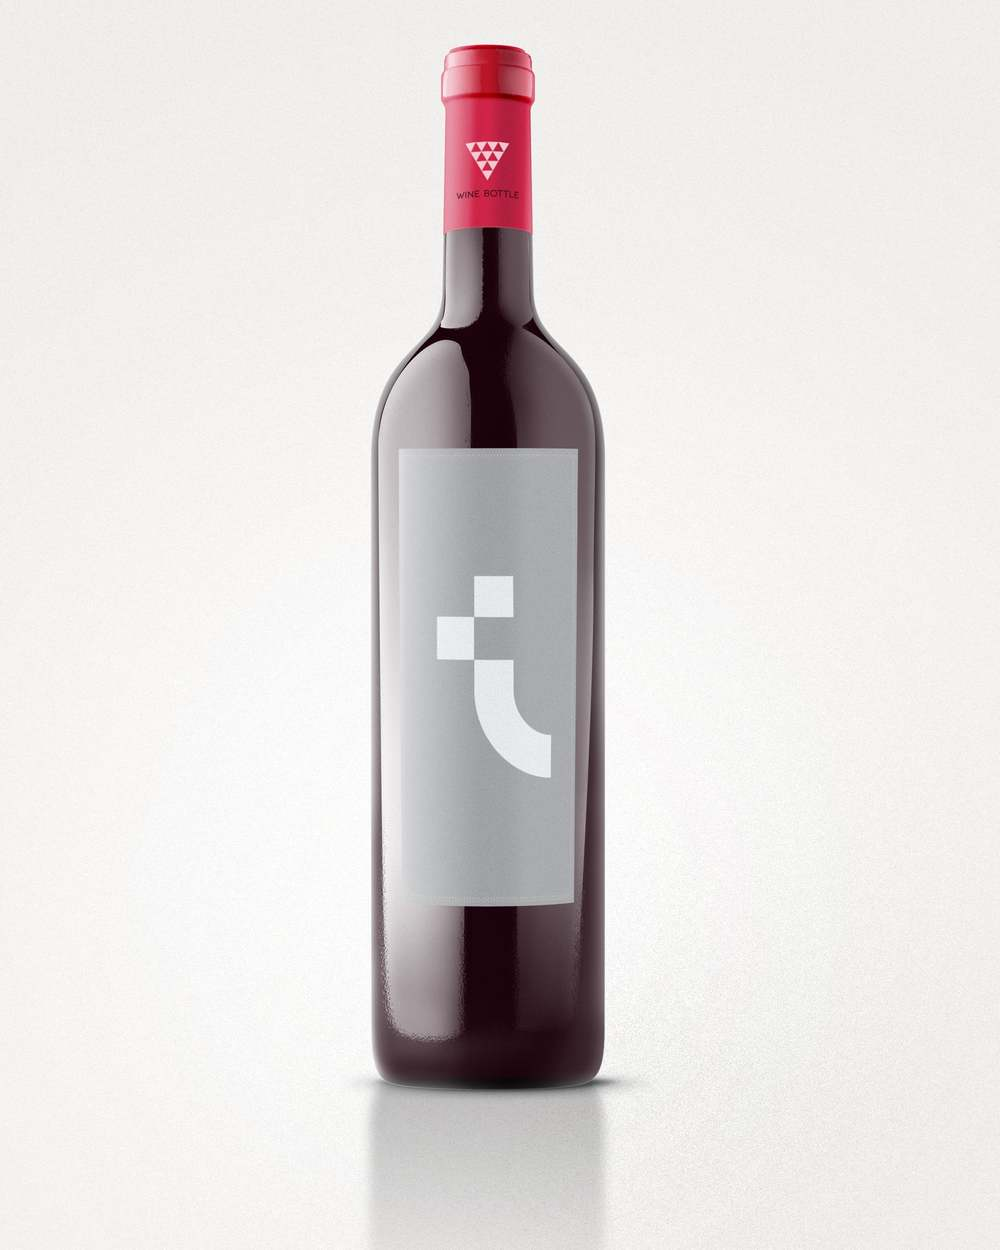 Wine-bottle-mock-up.jpg